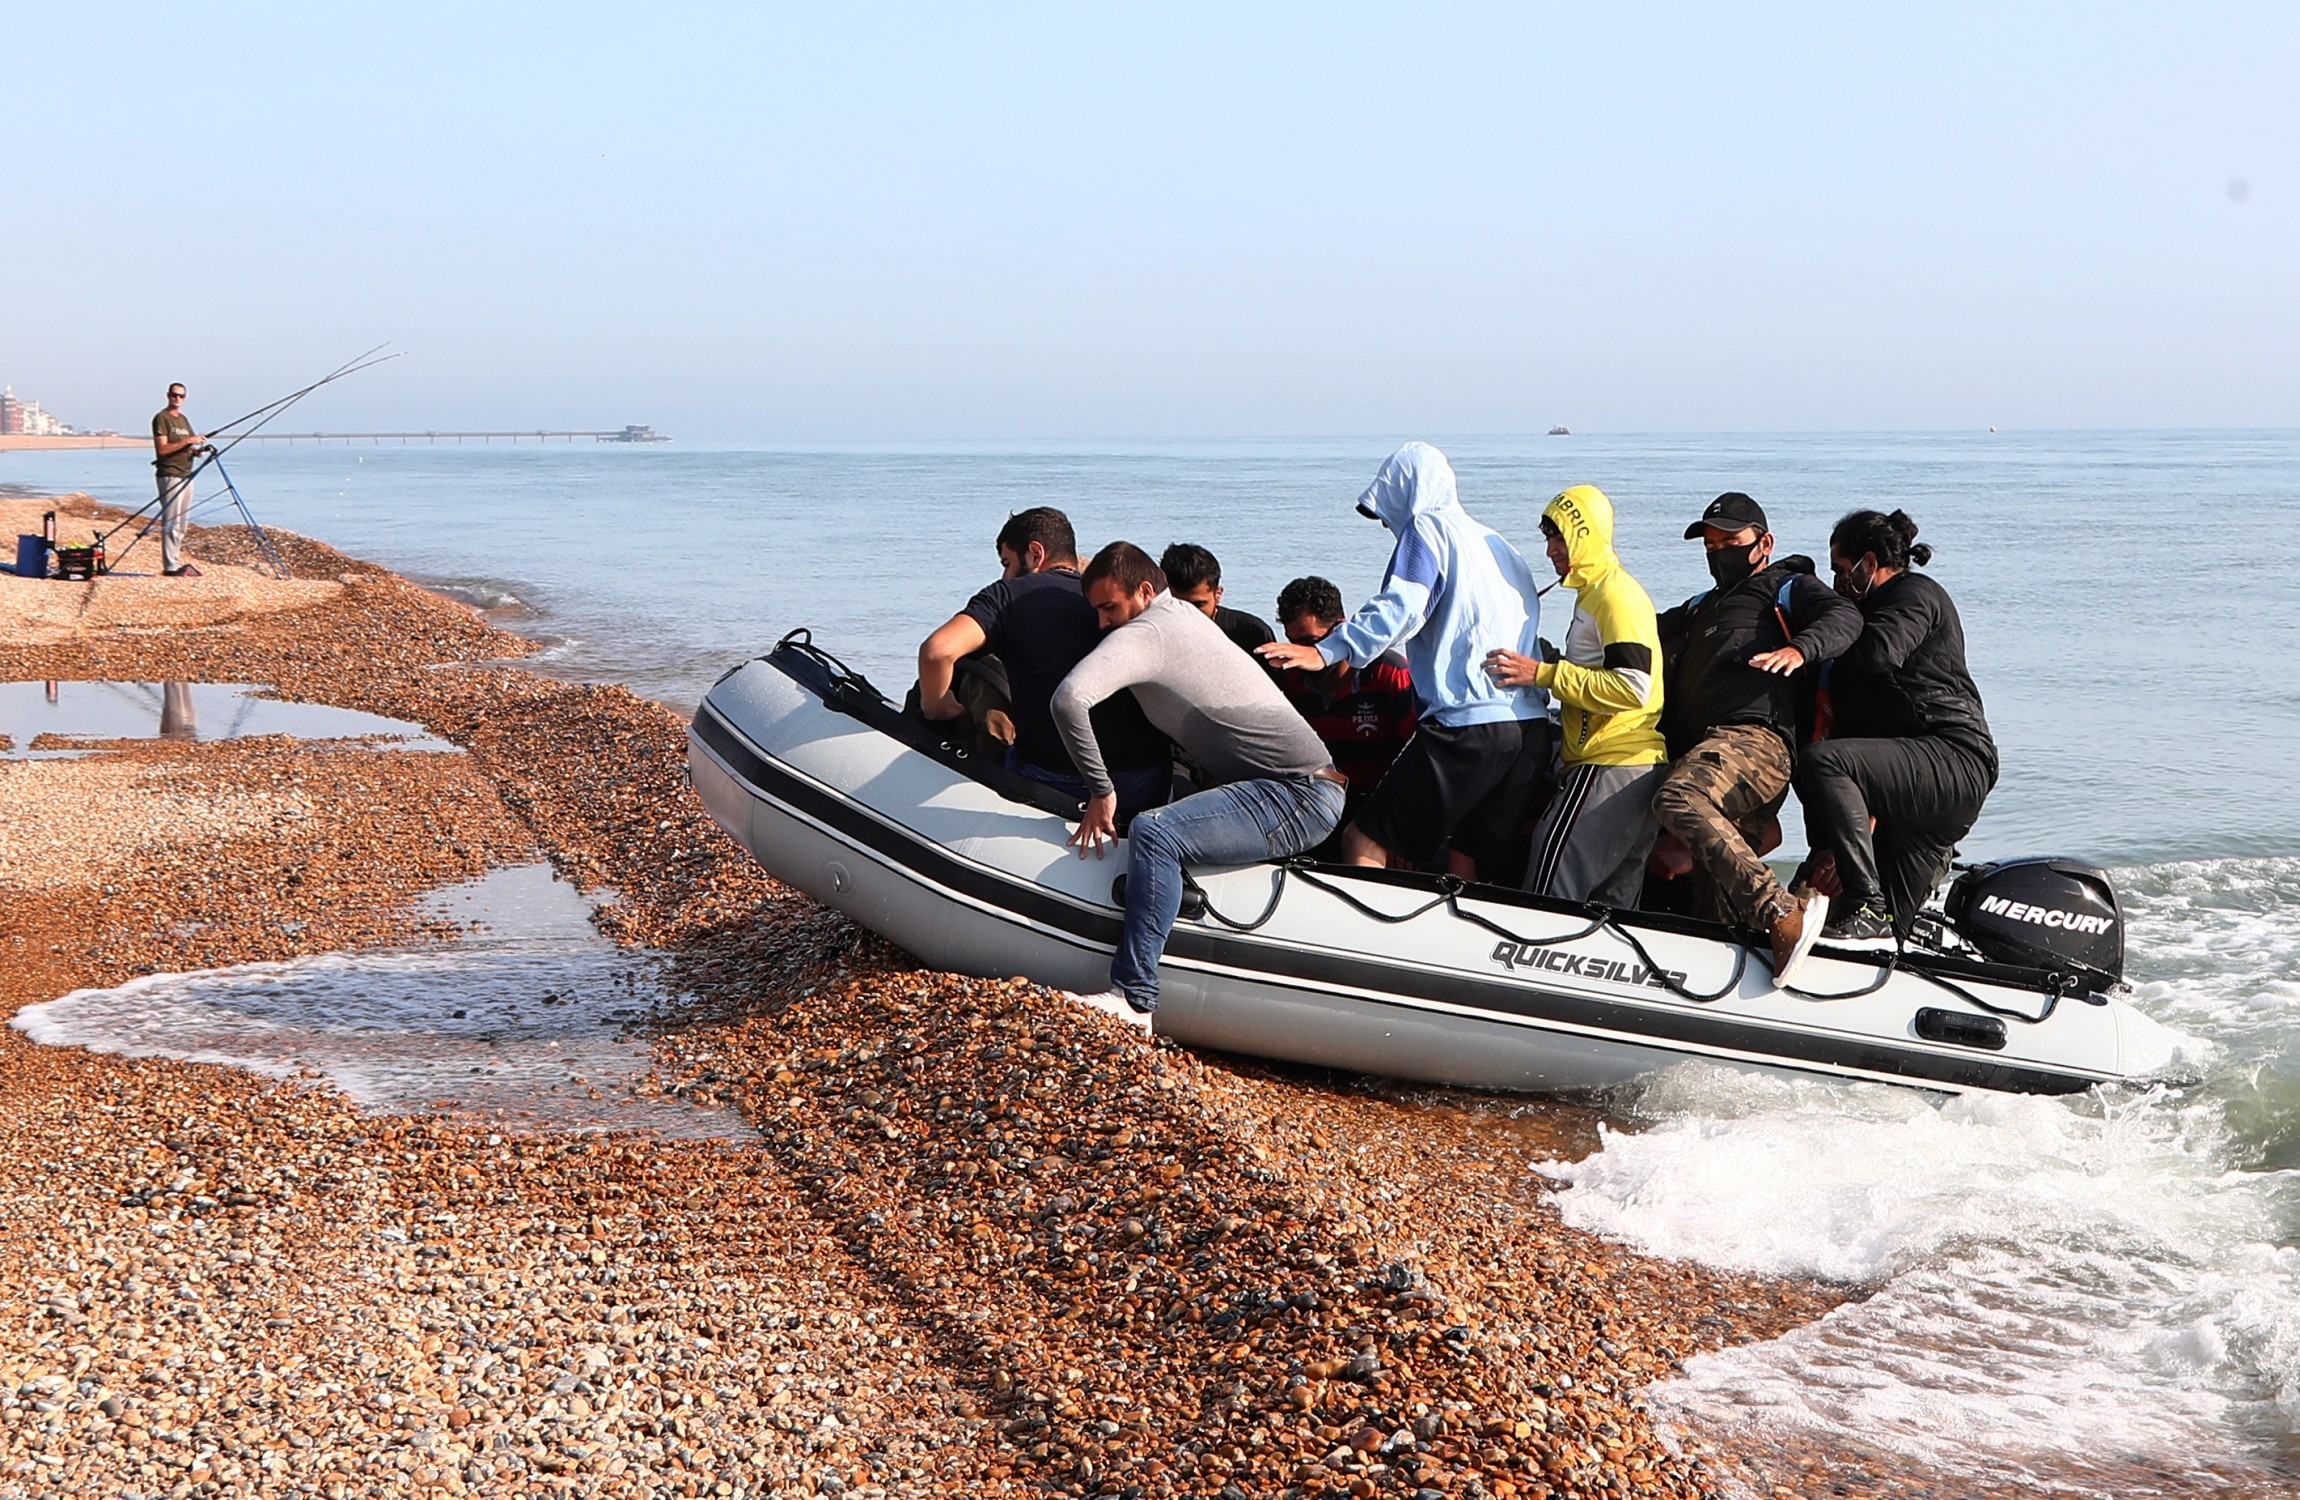 Channel crossings: More officers to patrol French beaches